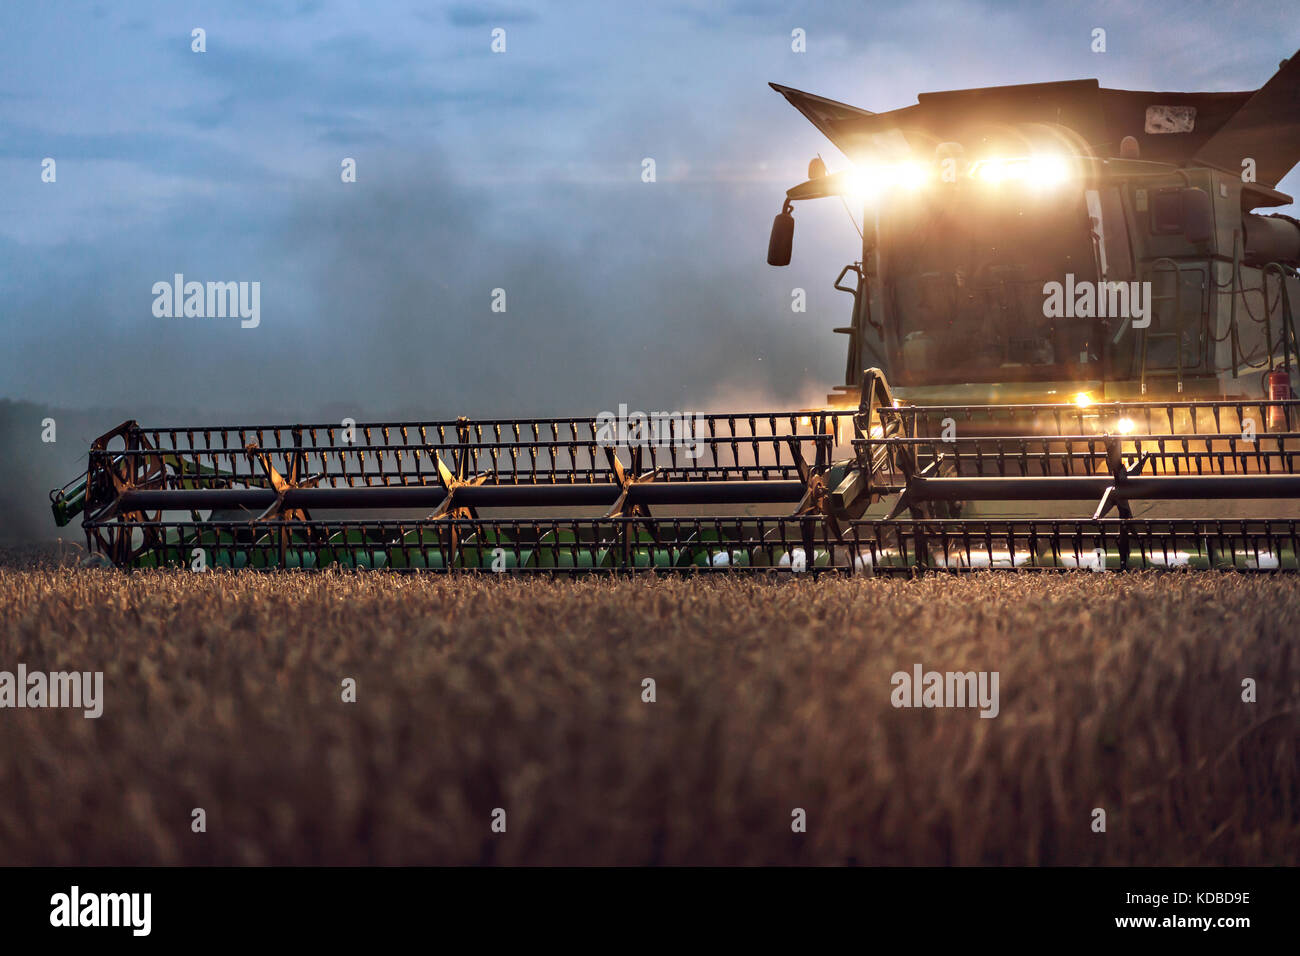 Partial view of a combine on a field at night - Stock Image